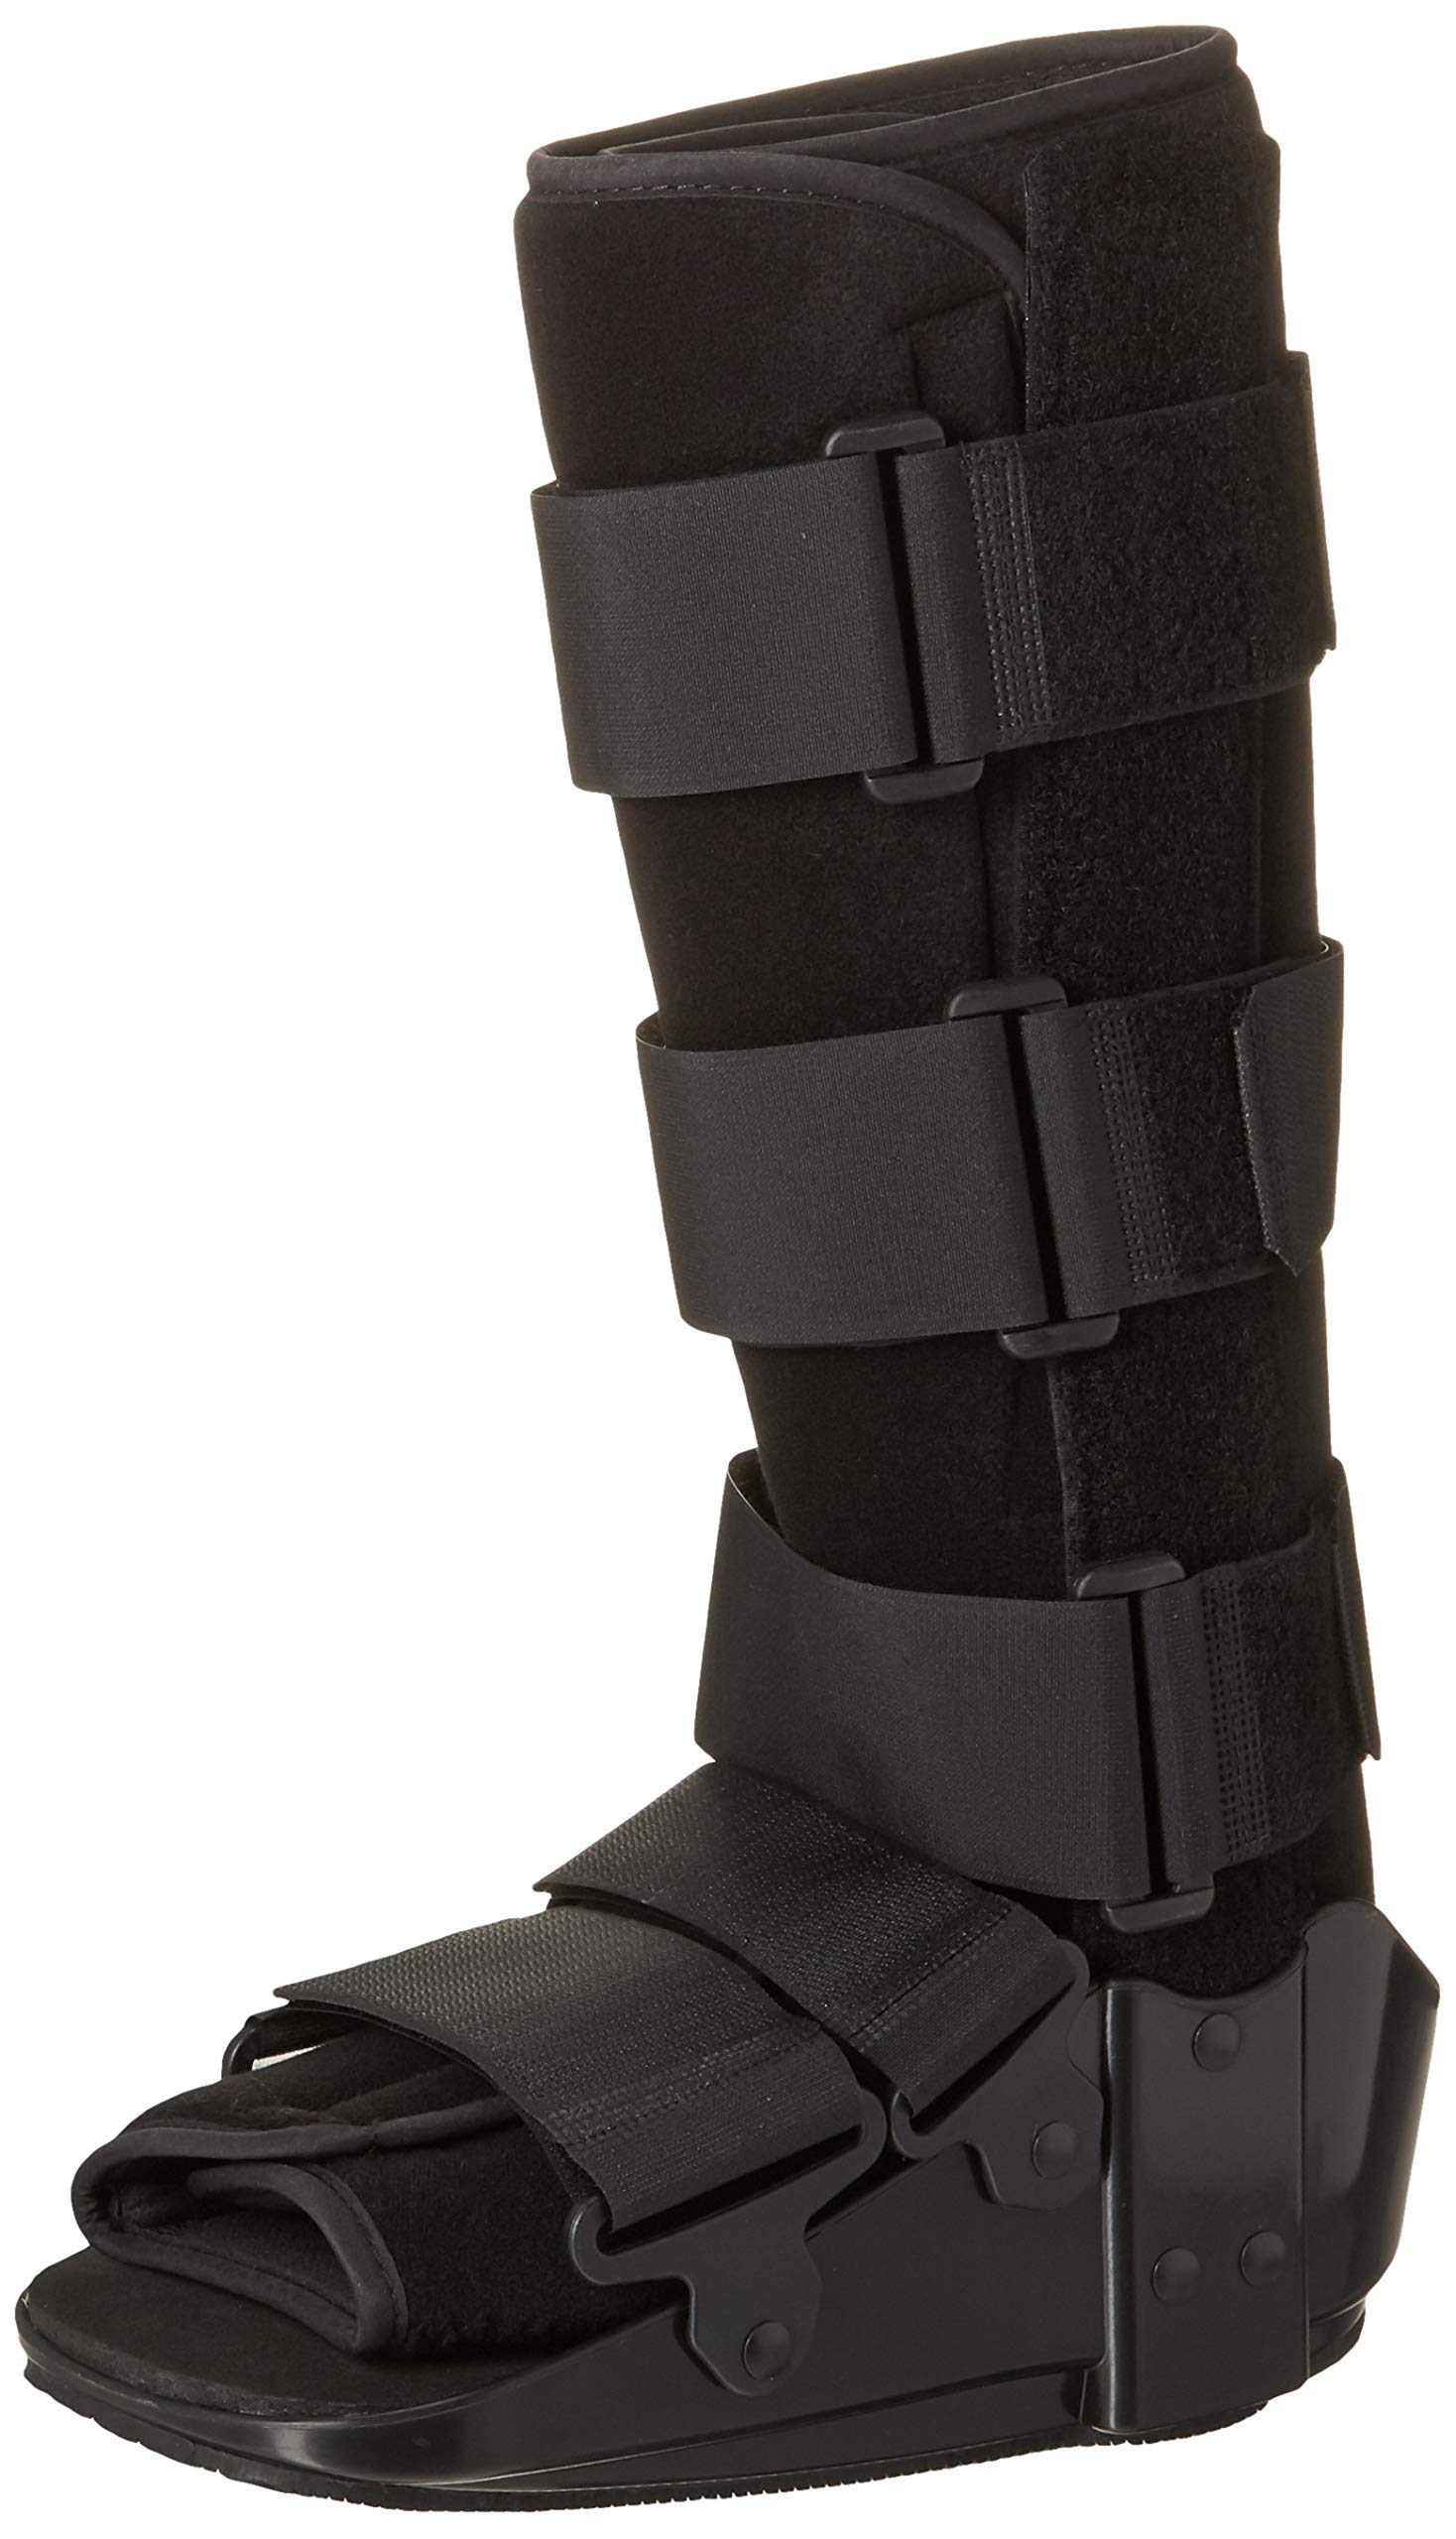 OTC Short Leg Cast High Top Walker Boot, Black, Small/Tall by OTC